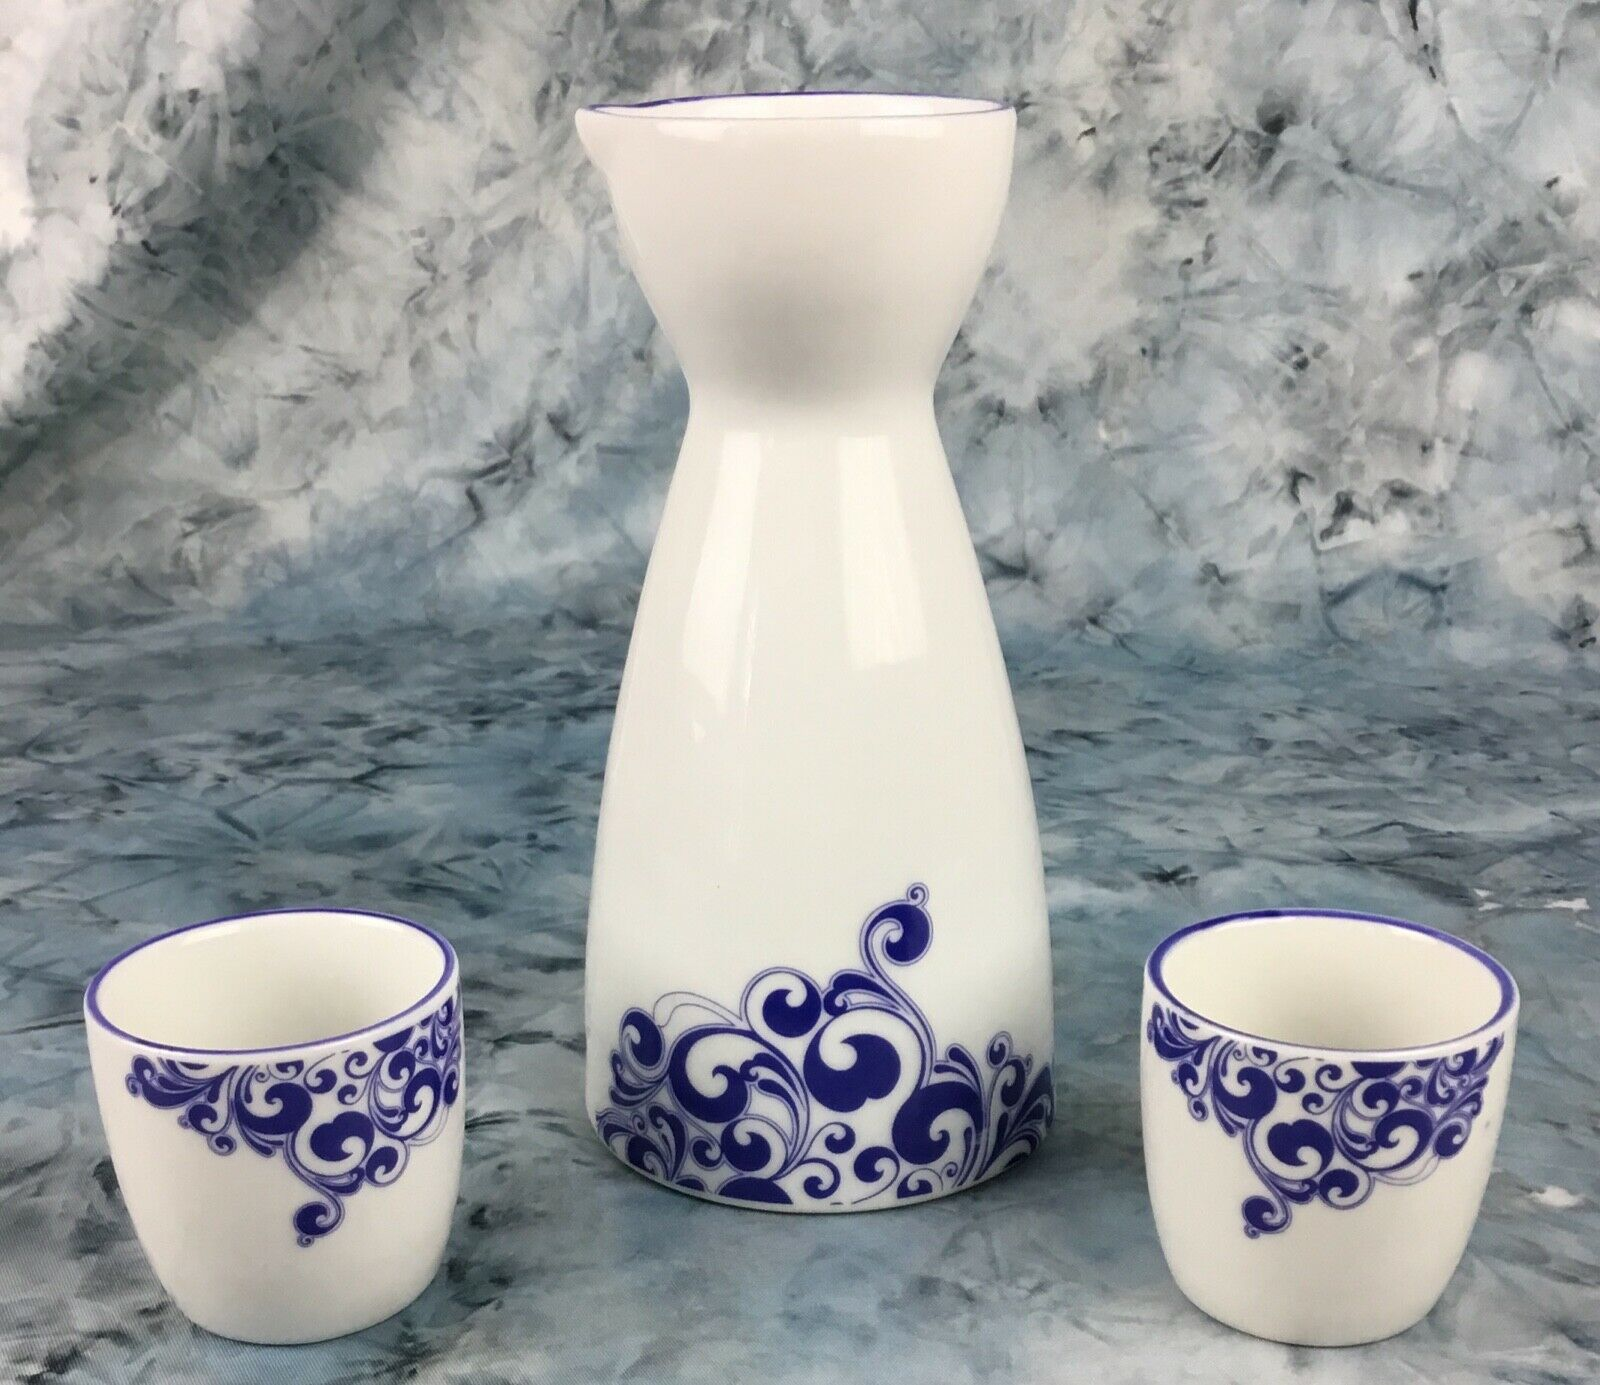 Fine Porcelain Hand Painted Sake Set White, Blue Bottle W /2 Cups  - $10.50